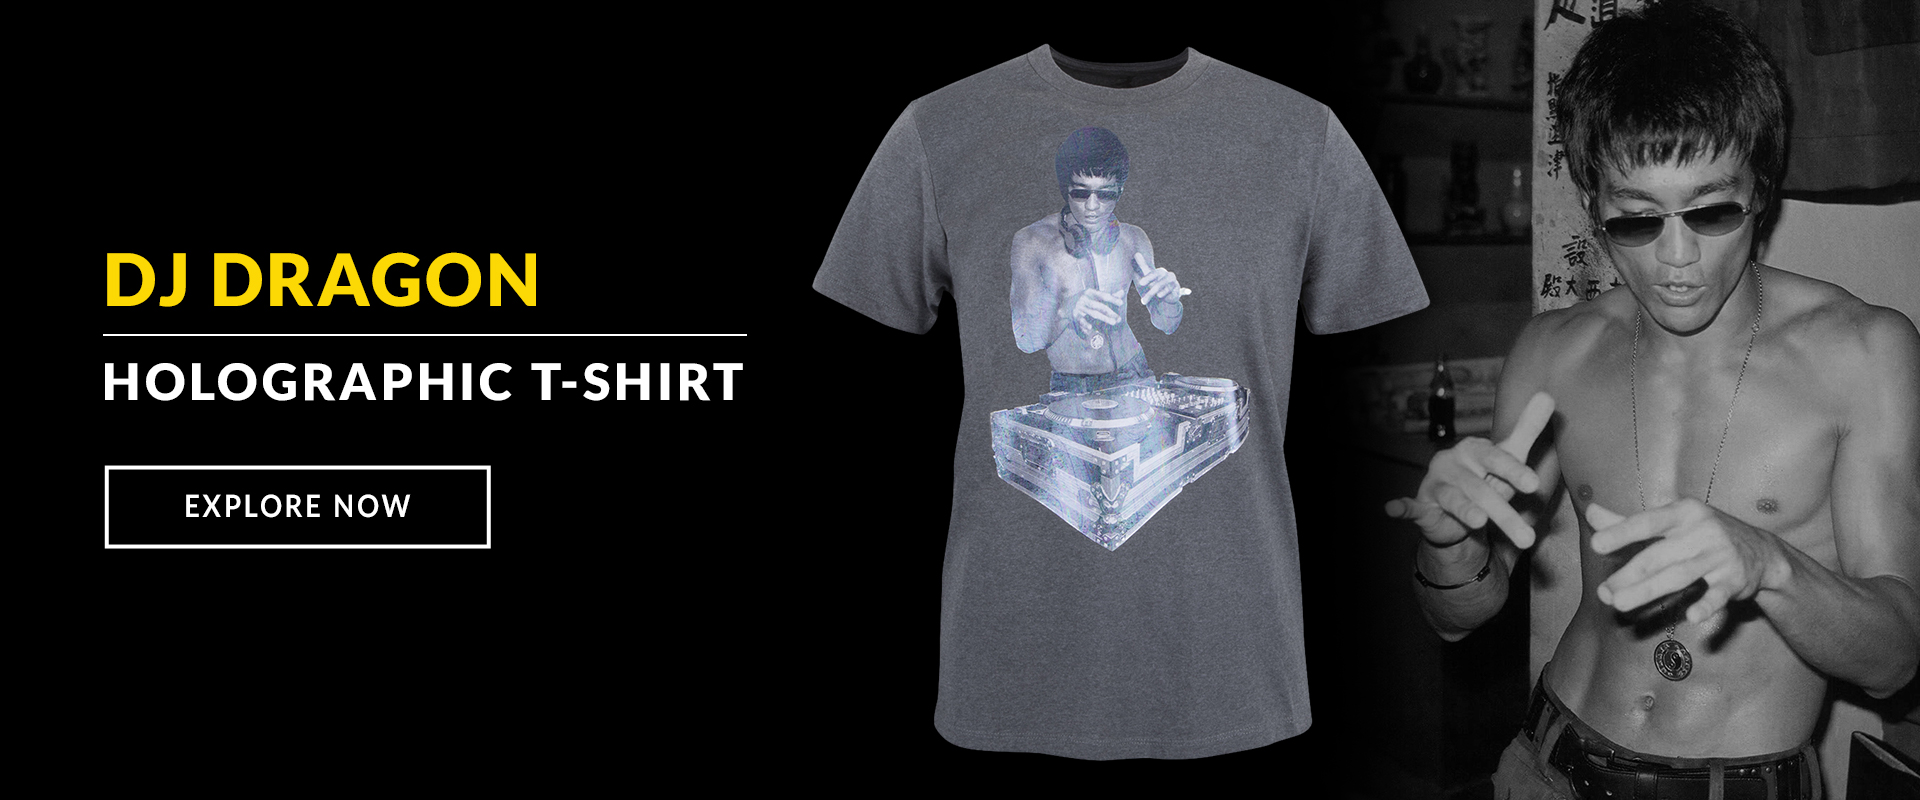 Bruce Lee DJ Dragon Holographic T-shirt